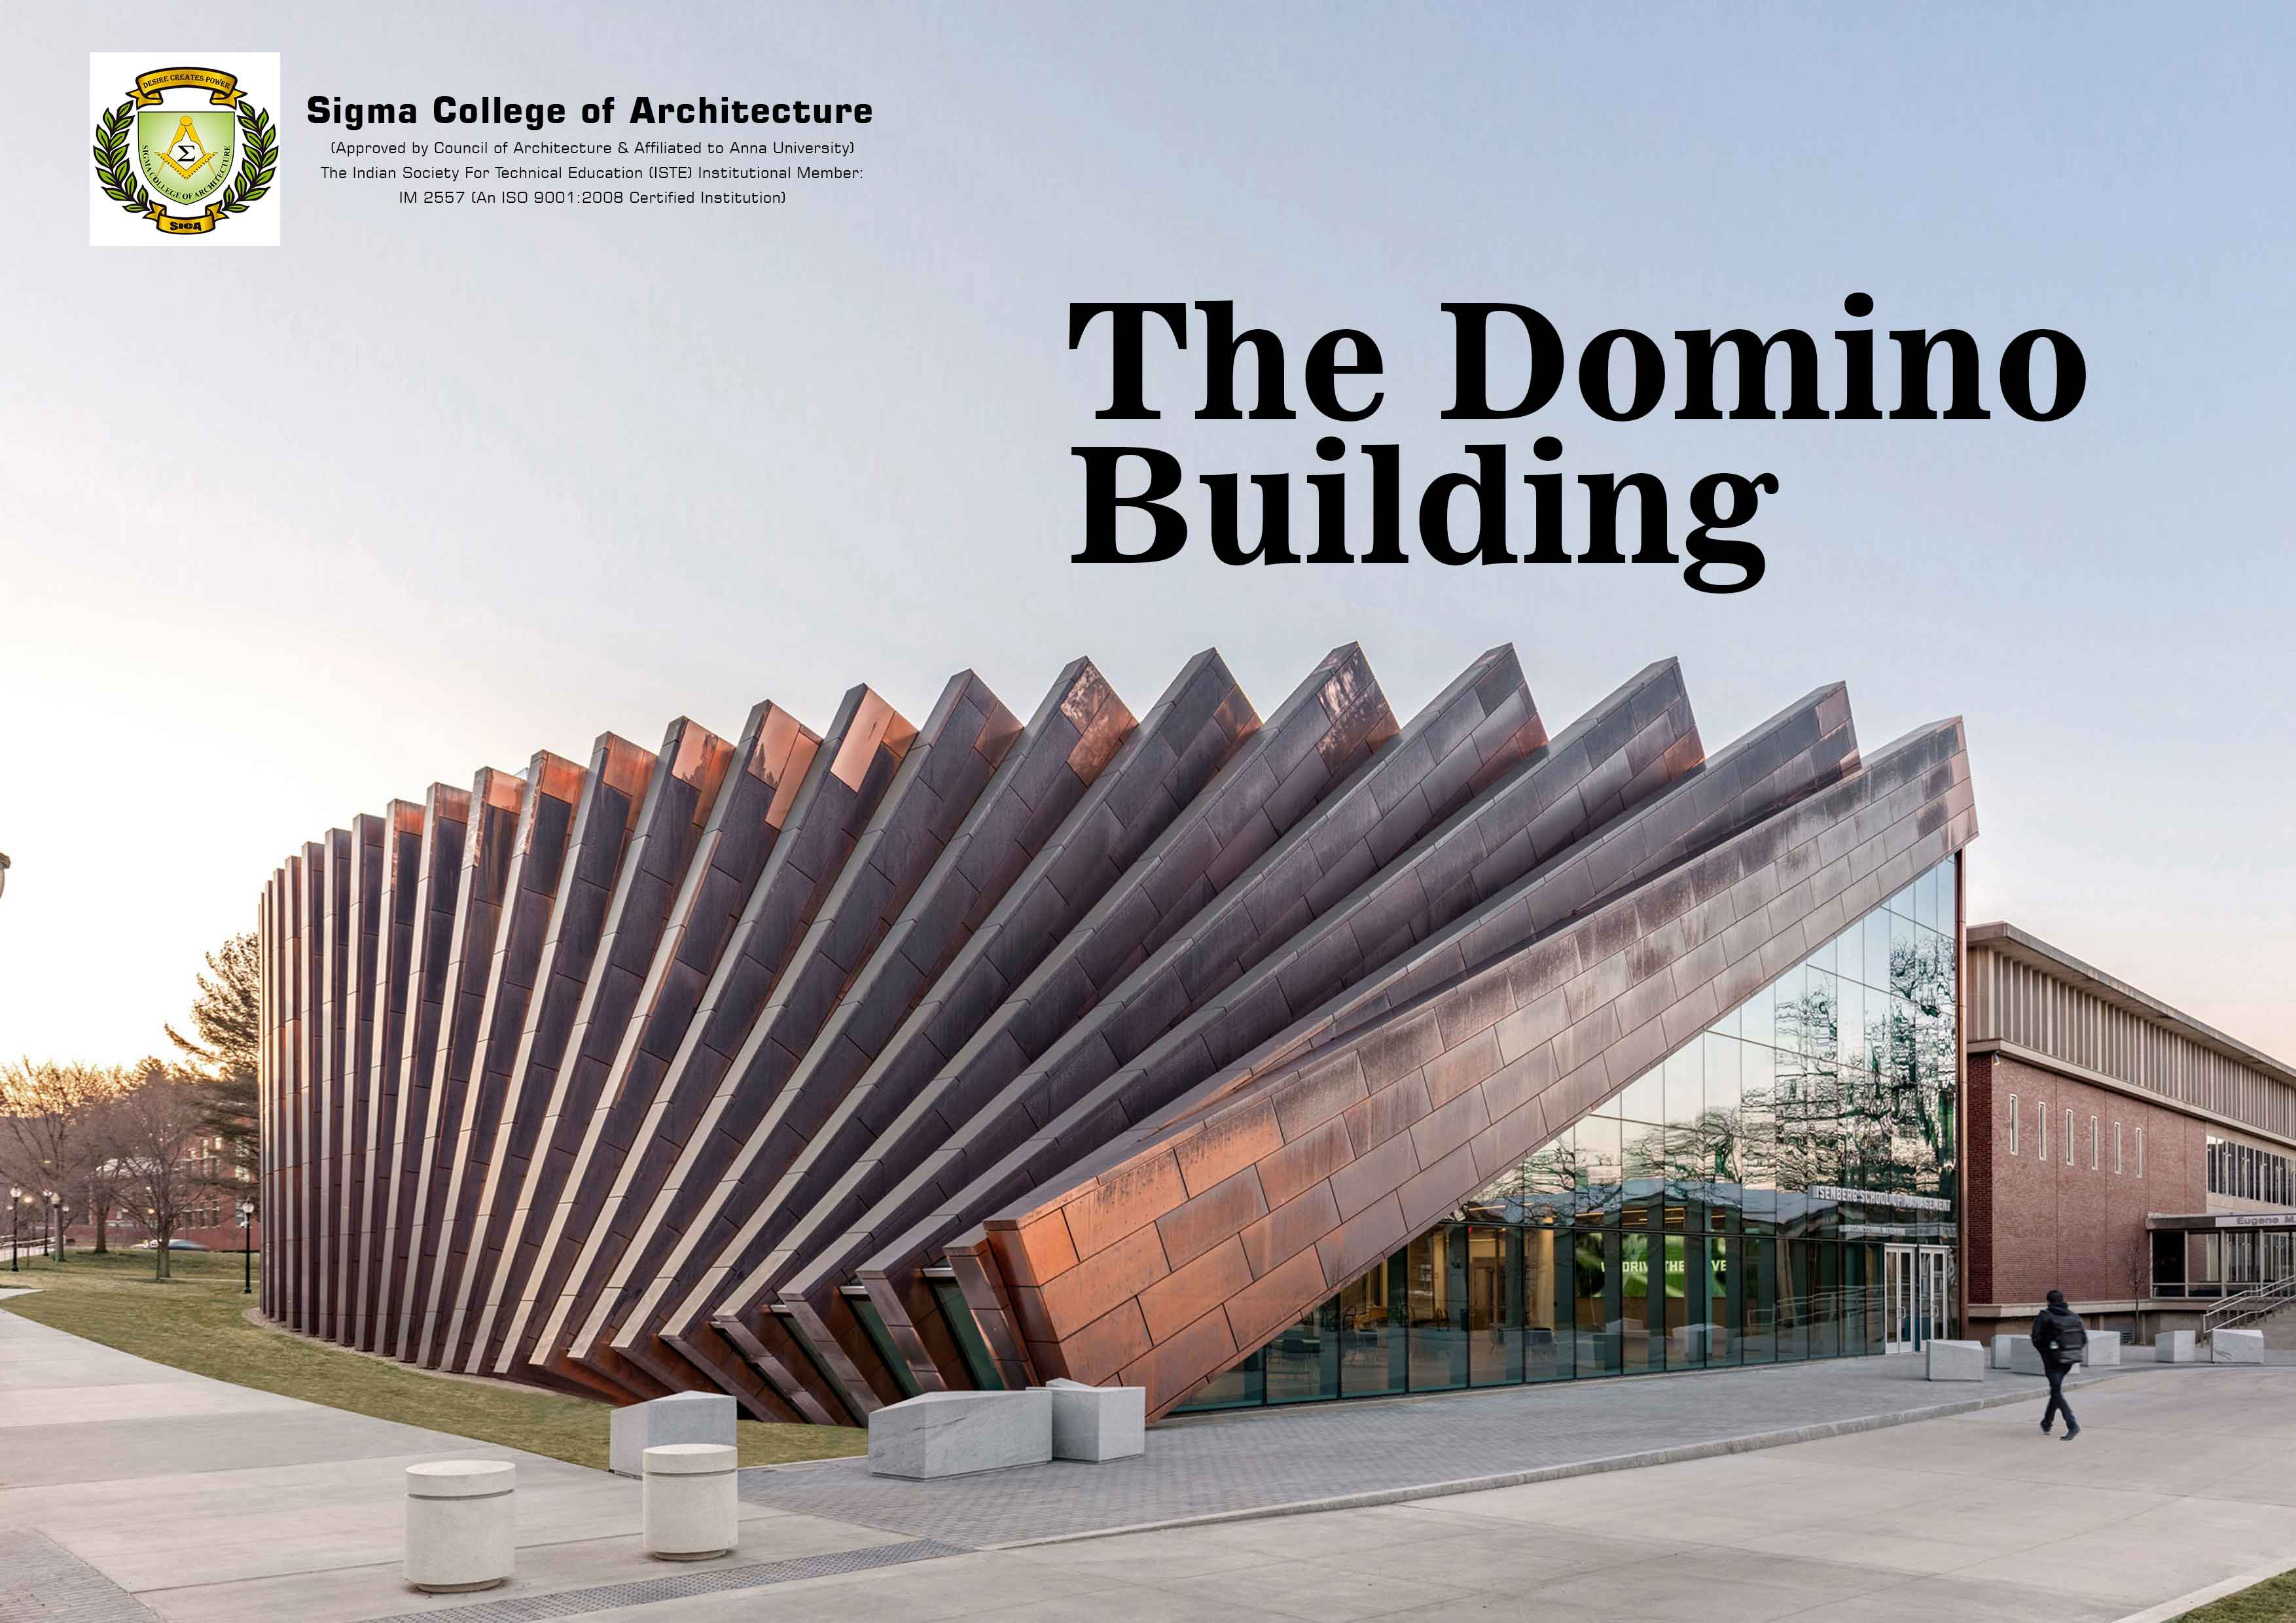 The Domino Building